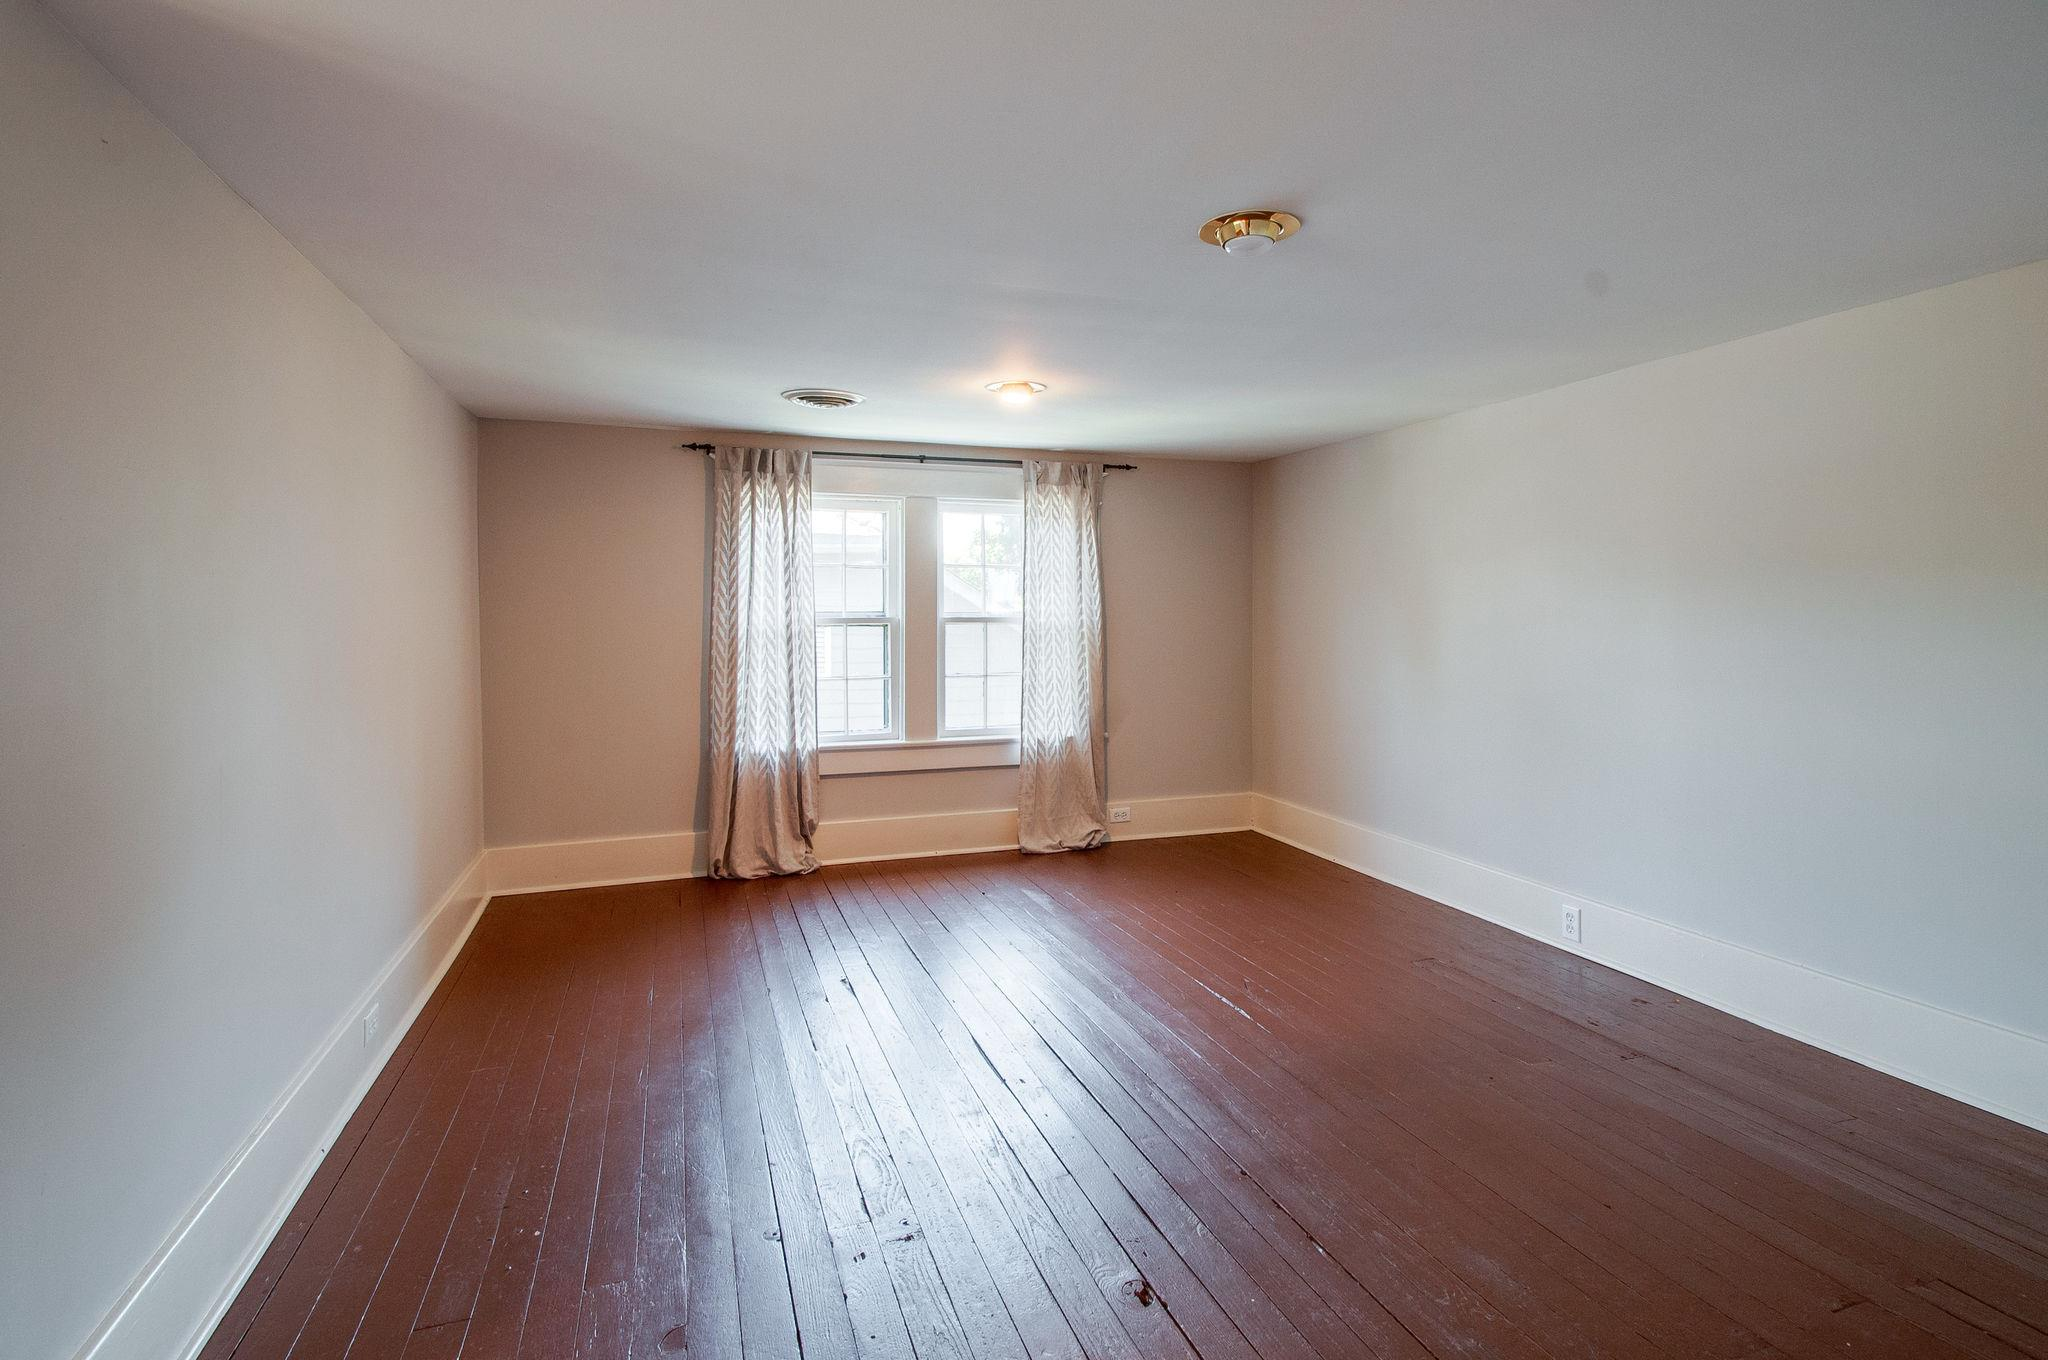 Large upstairs bedroom in a historic home